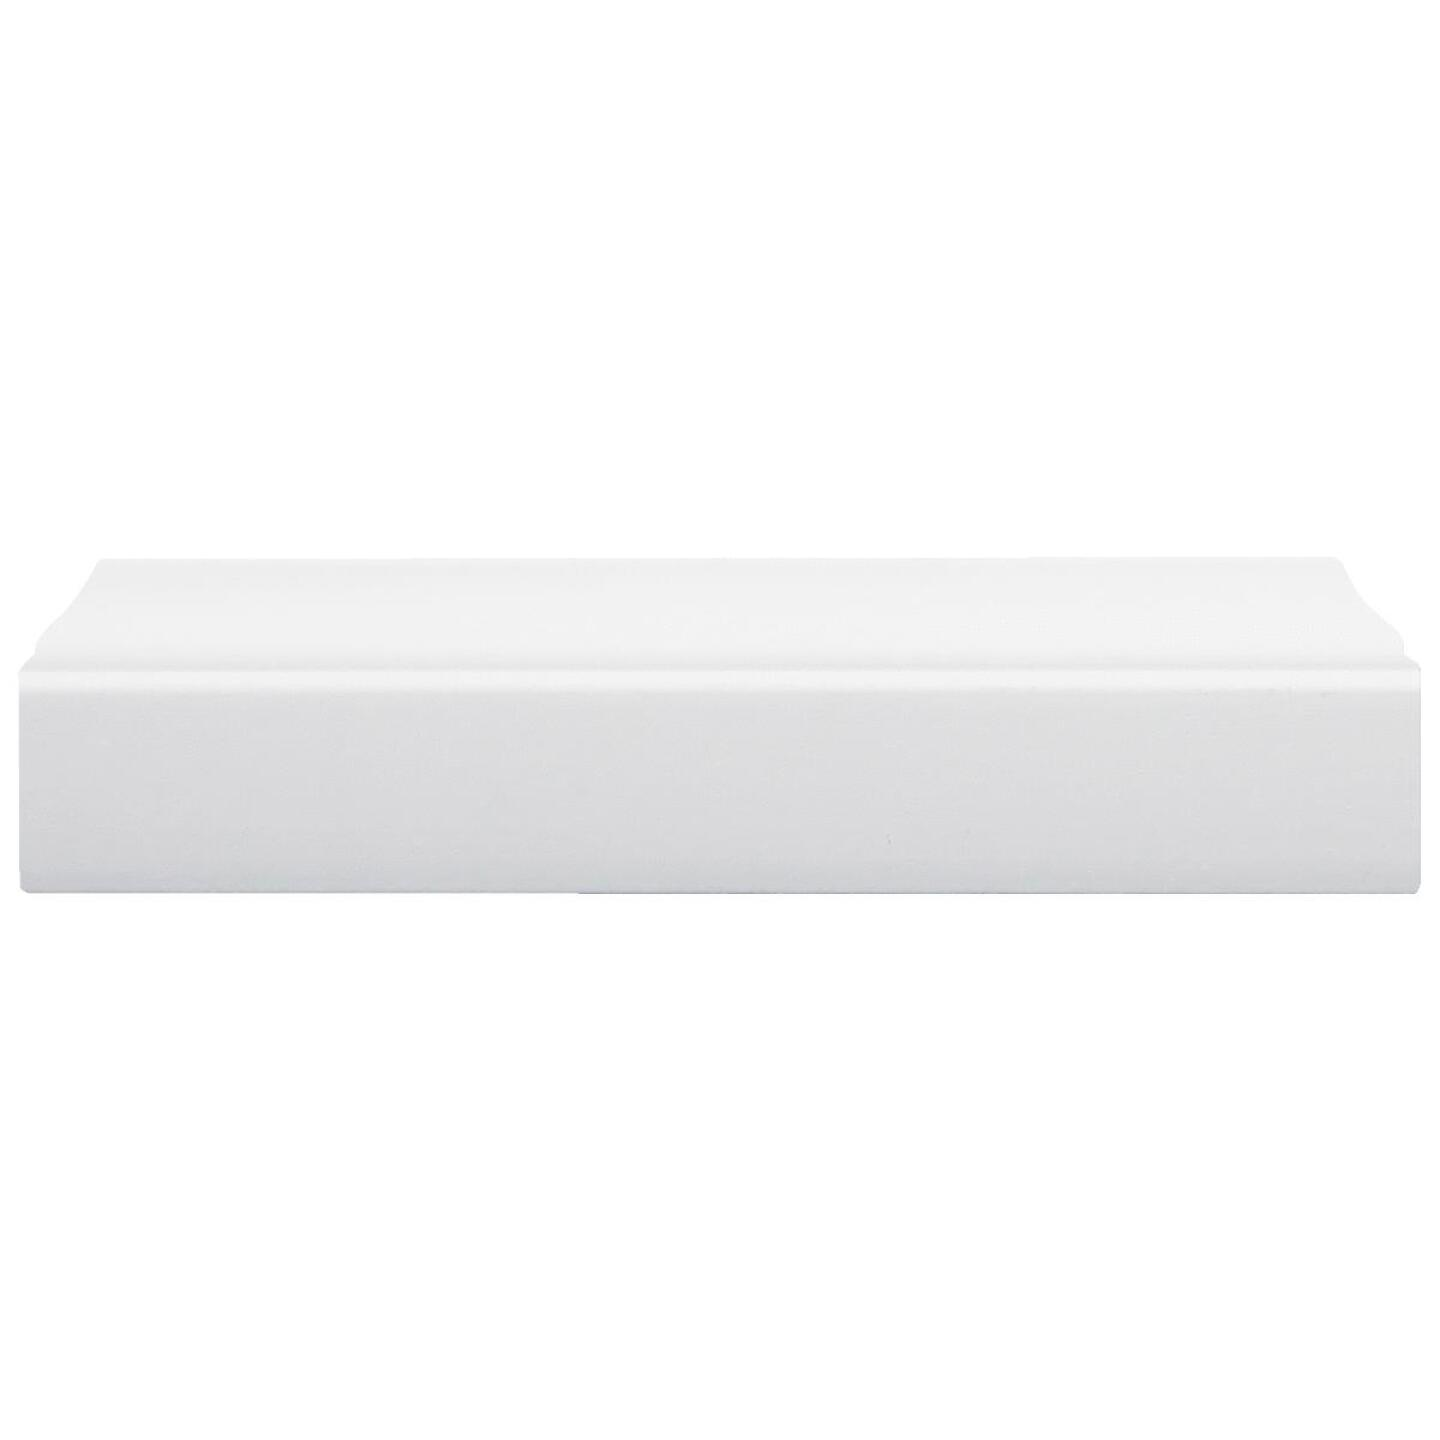 Inteplast Building Products 3/8 In. W. x 1-5/16 In. H. x 7 Ft. L. Crystal White Polystyrene Stop Molding Image 4